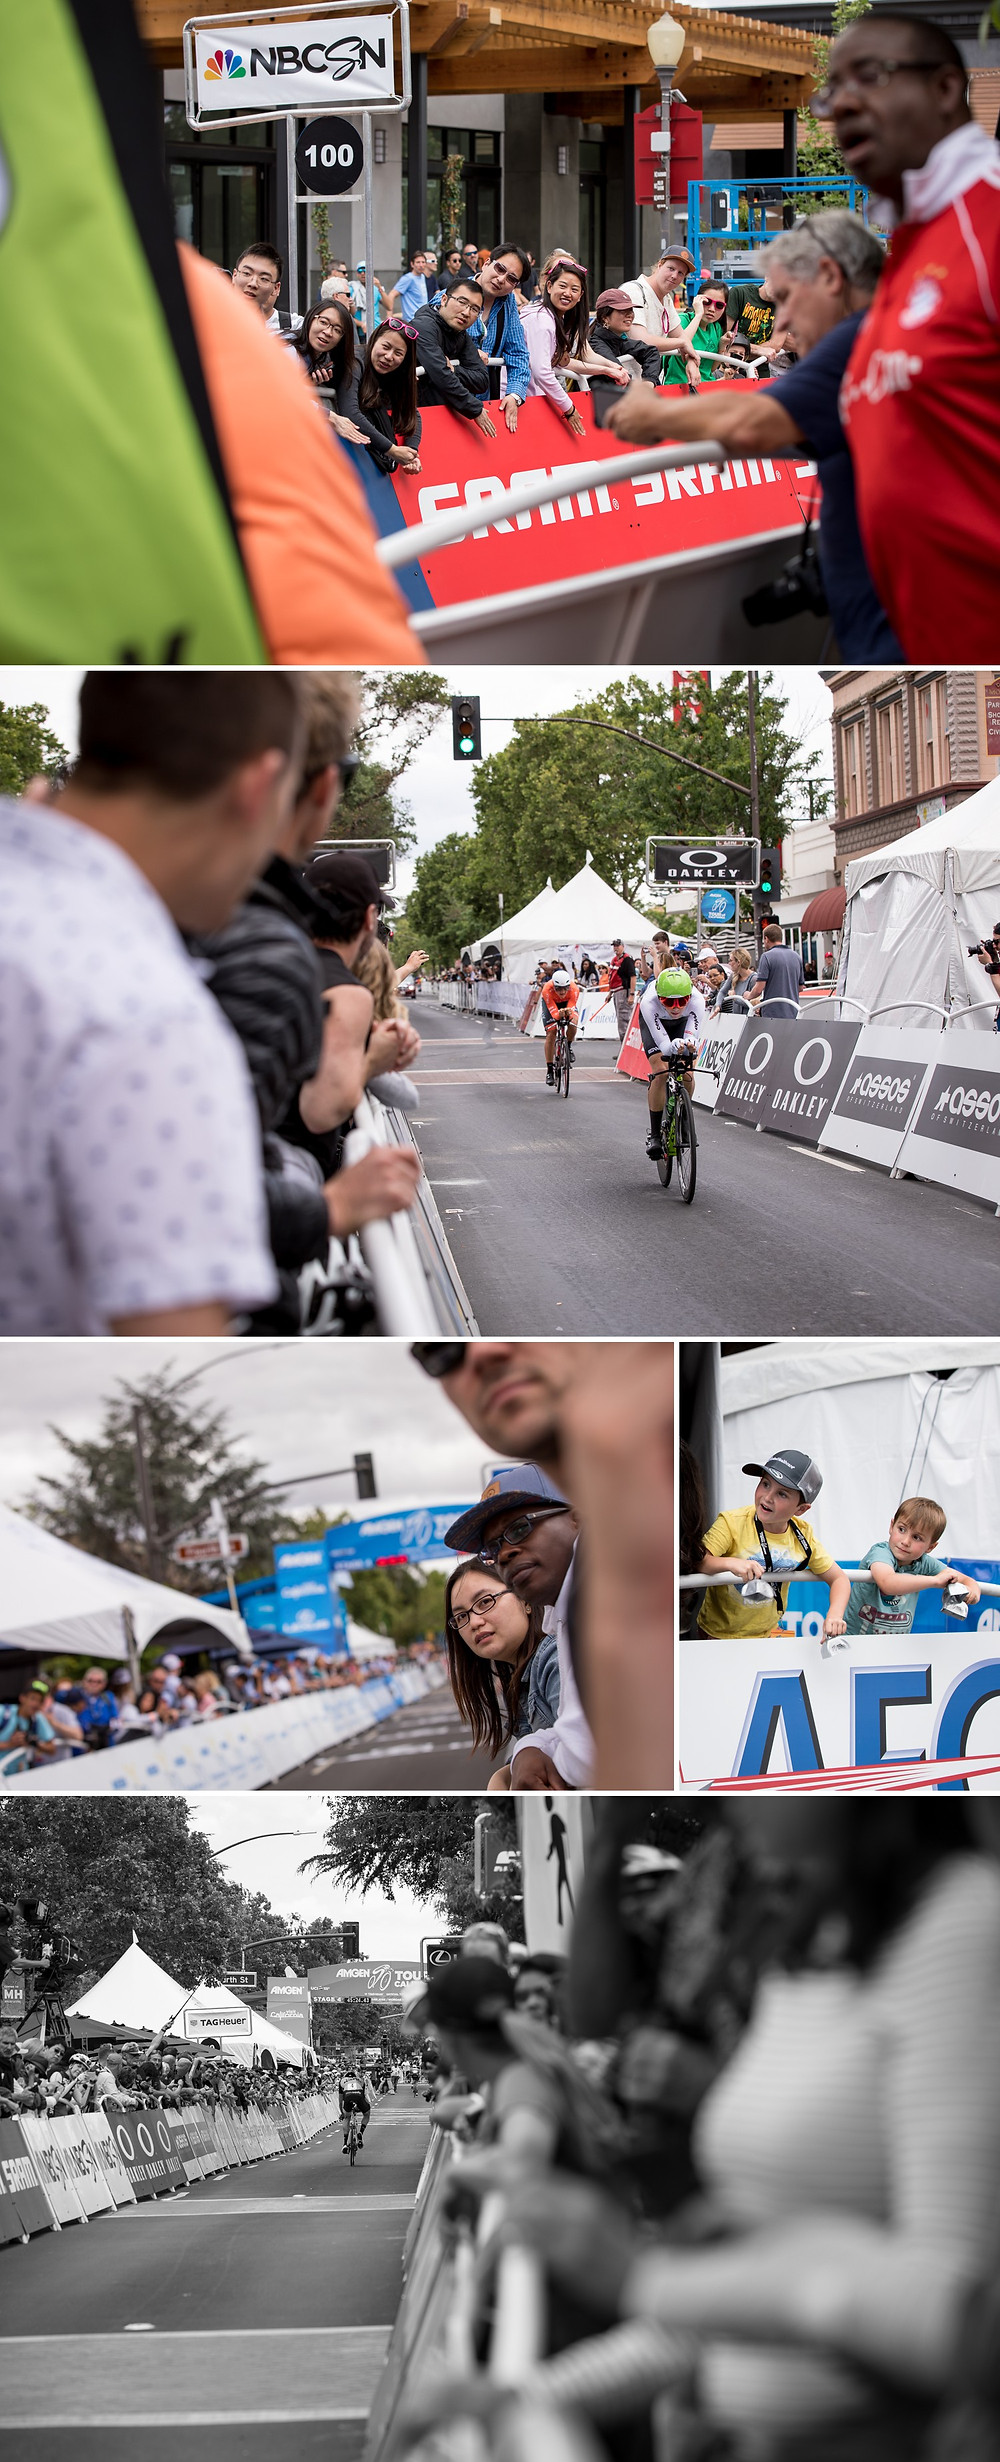 Excitement at the finish line in Downtown Morgan Hill.